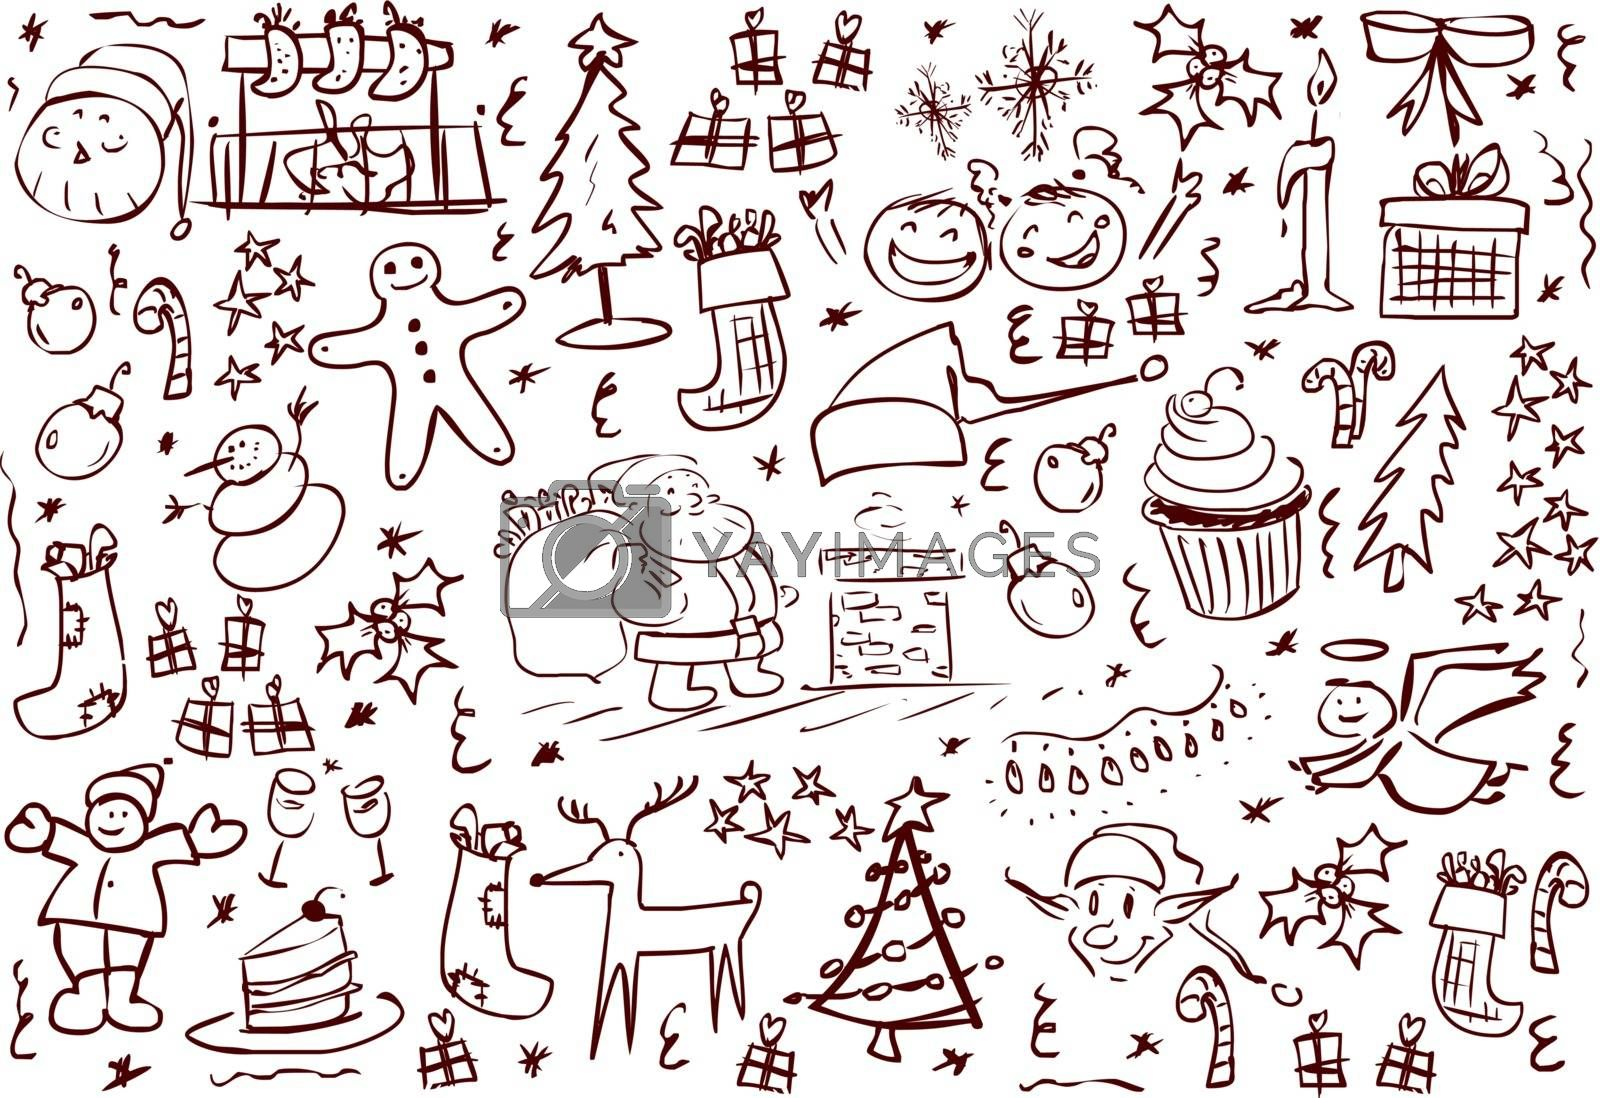 A pack of vector illustrations of Christmas related doodles.